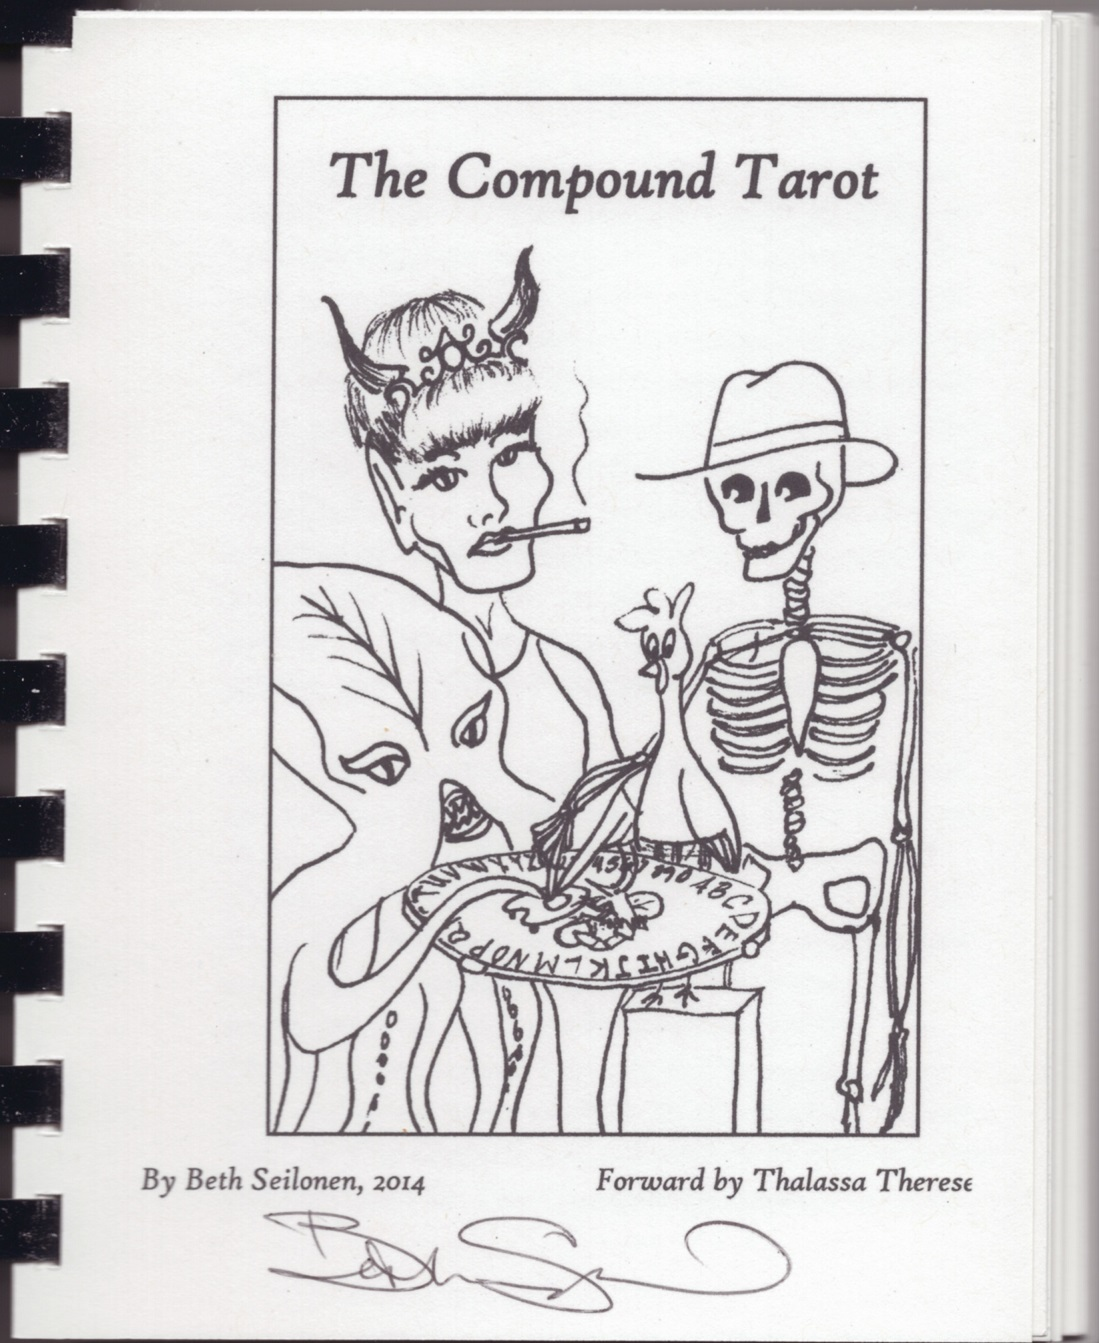 Compound_Cover.jpg